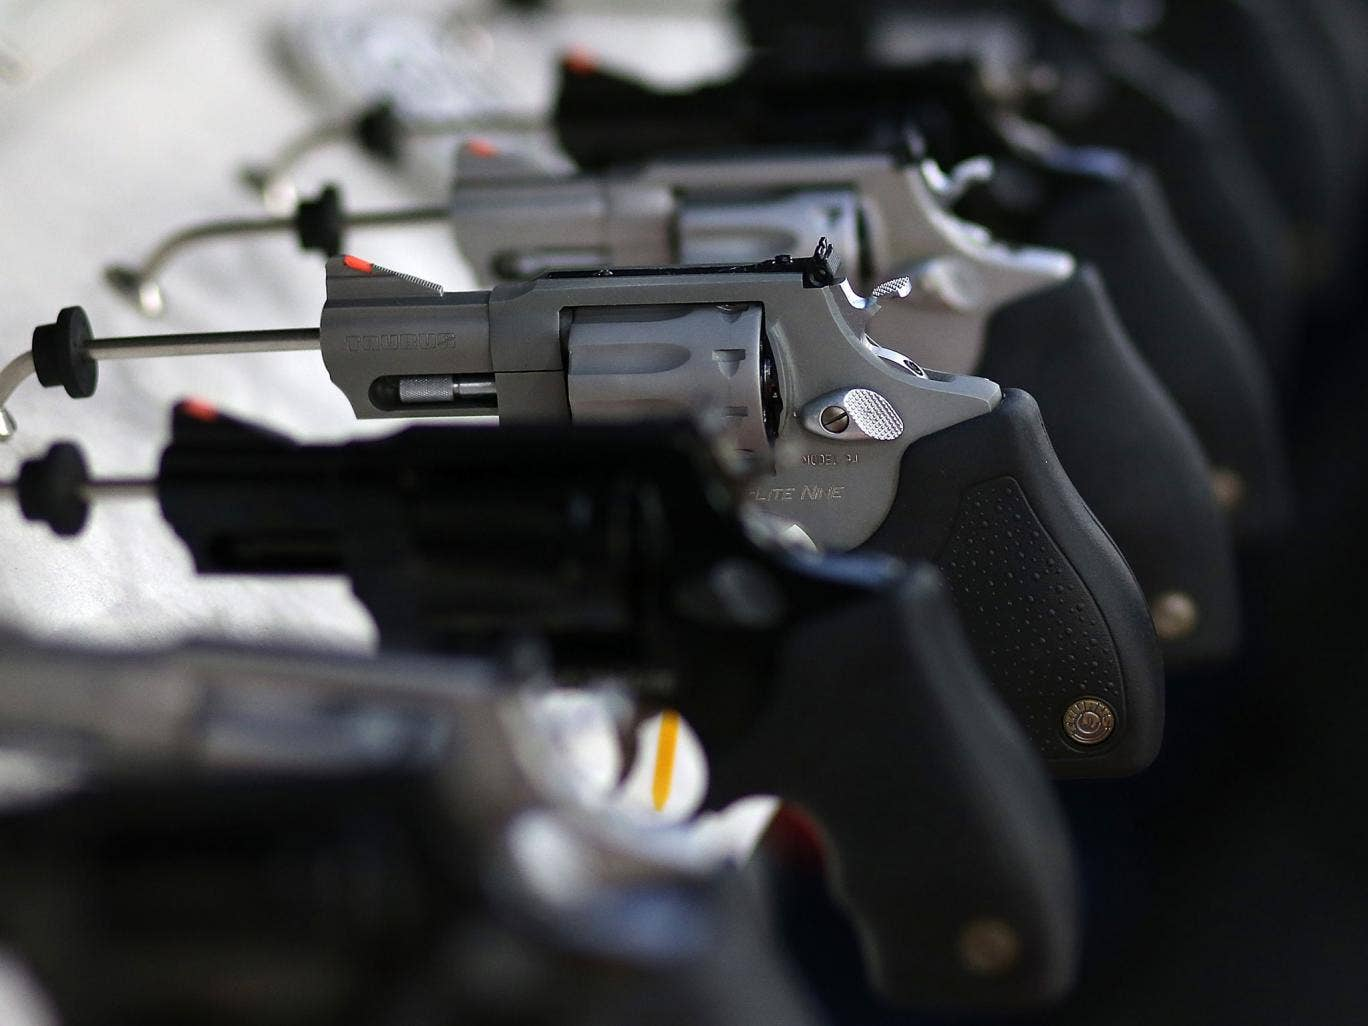 Handguns are displayed during the 2013 NRA Annual Meeting and Exhibits at the George R. Brown Convention Center on May 4, 2013 in Houston, Texas. More than 70,000 peope are expected to attend the NRA's 3-day annual meeting that features nearly 550 exhibit